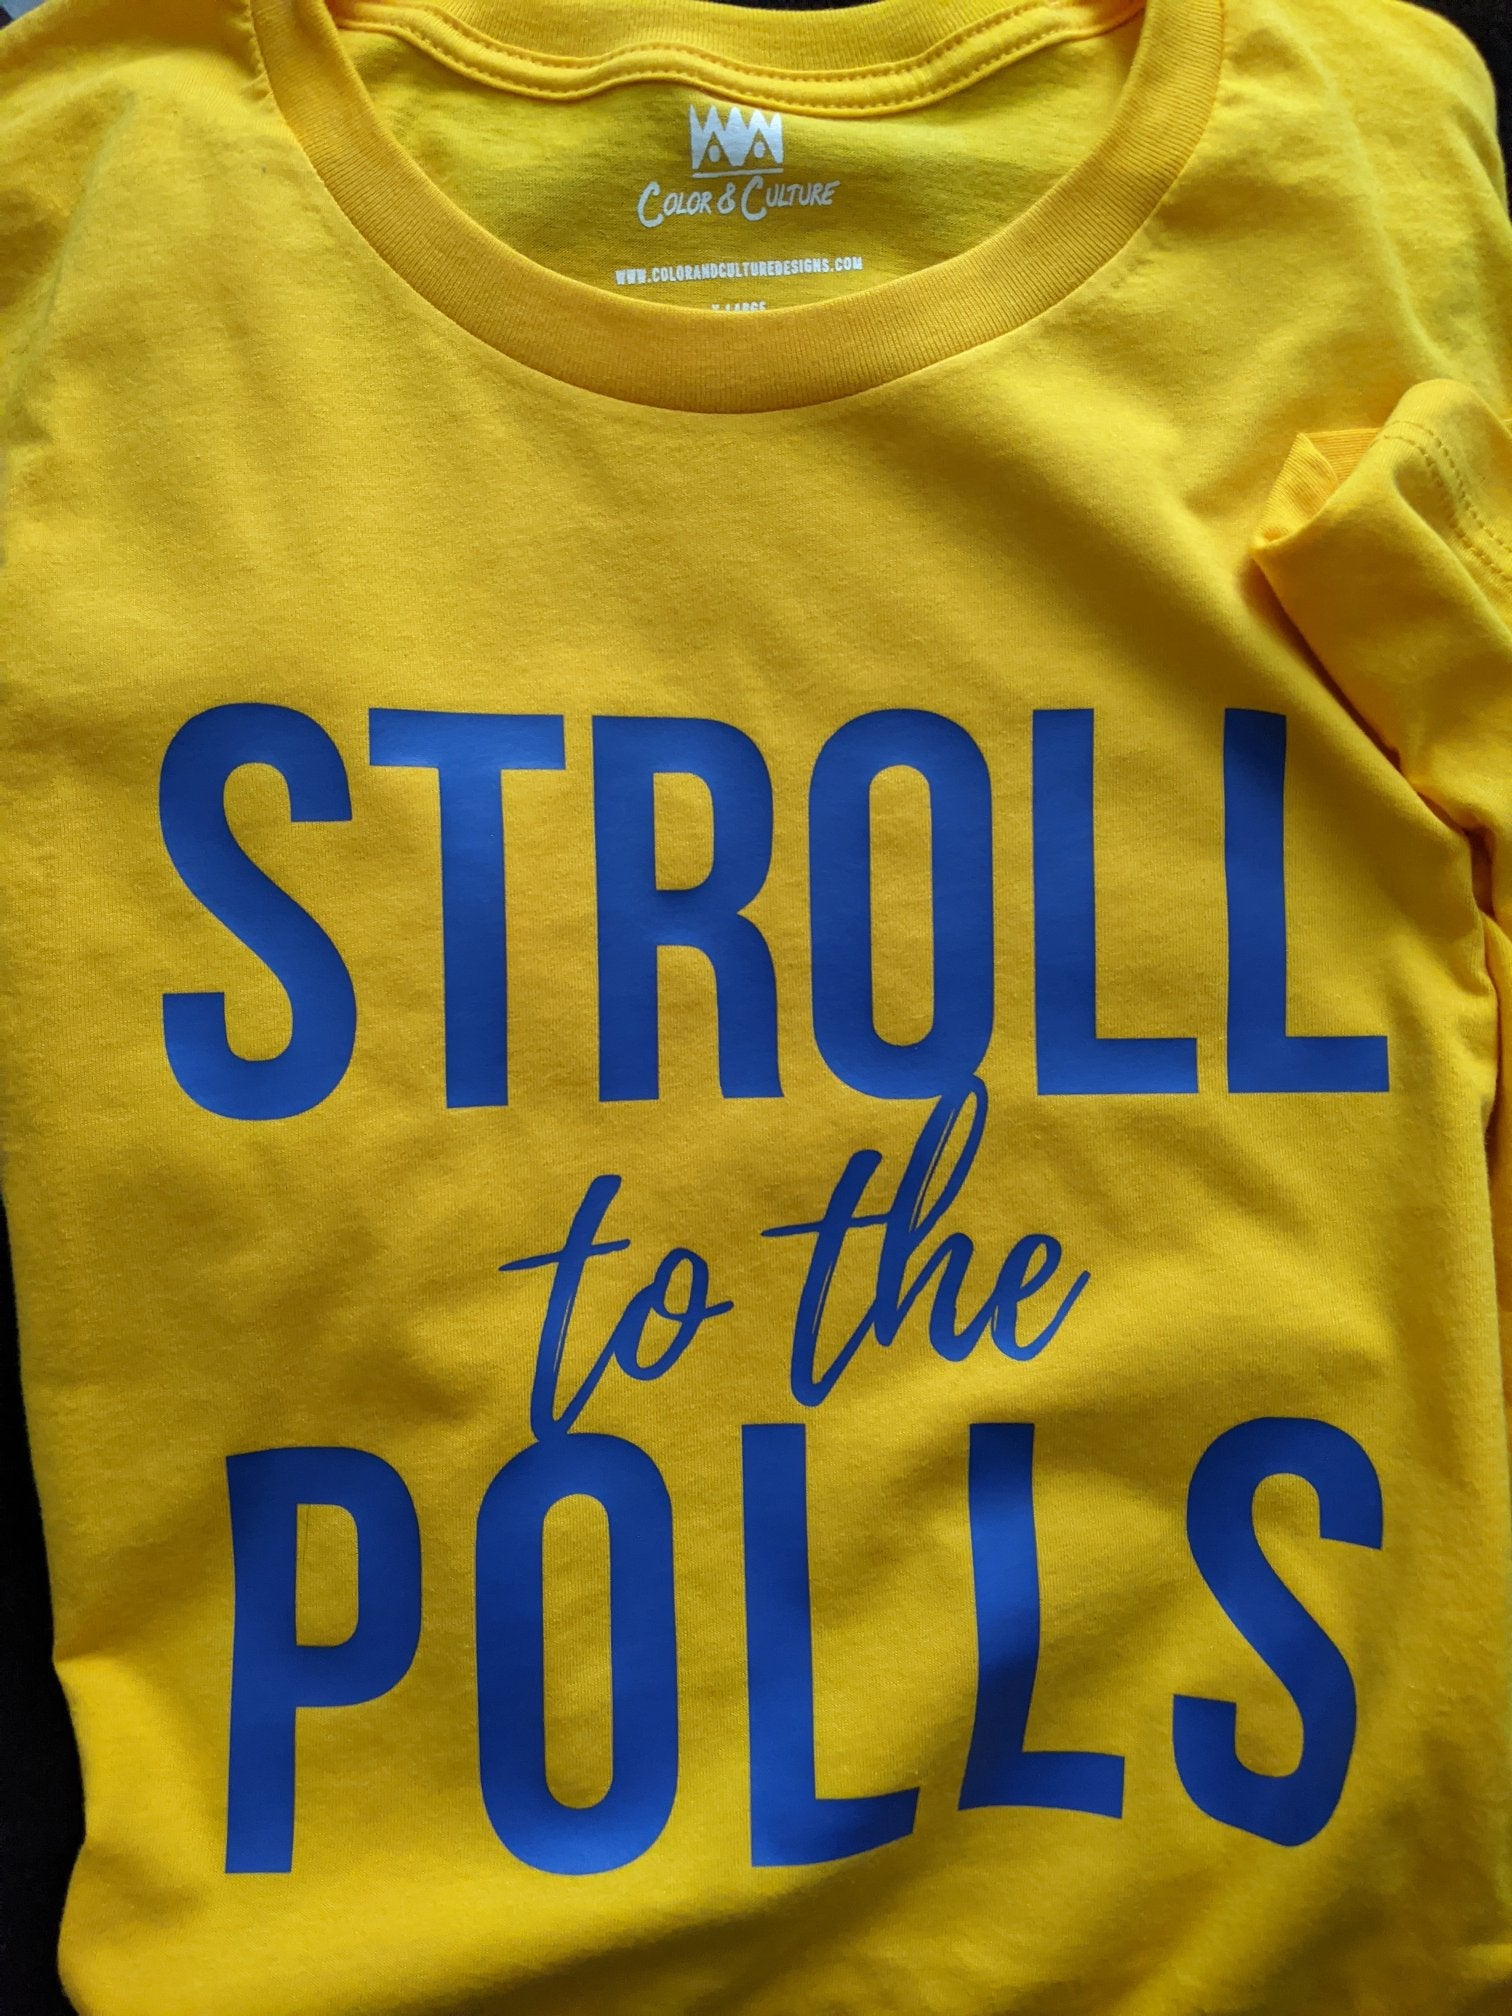 Stroll to the Polls - SGRho